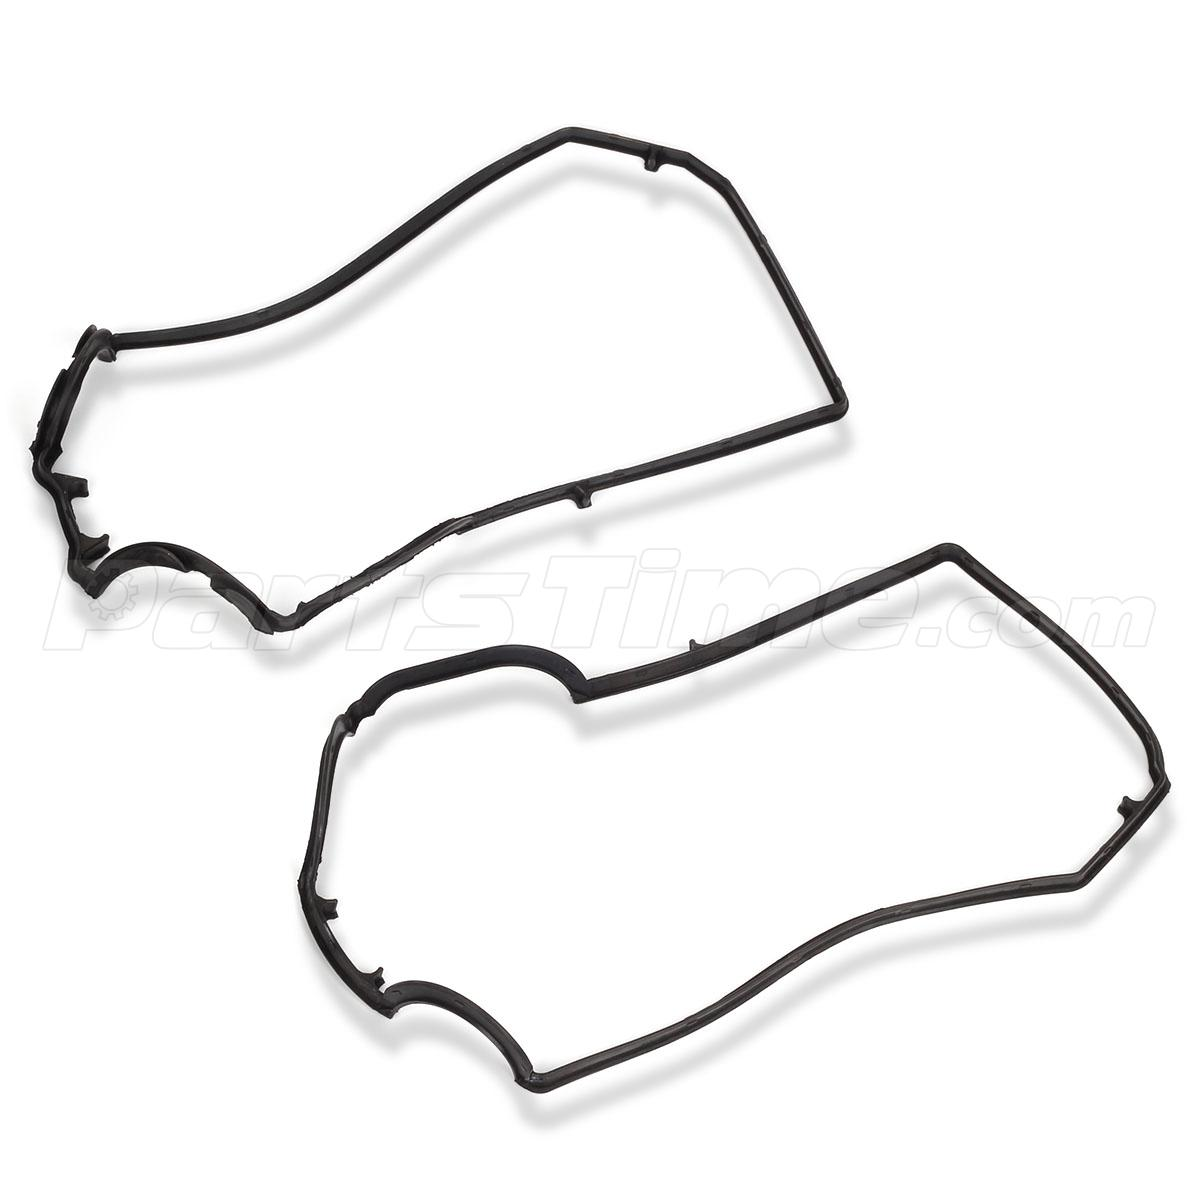 For 02 05 Subaru Impreza Turbo 2 0l Valve Cover Gaskets